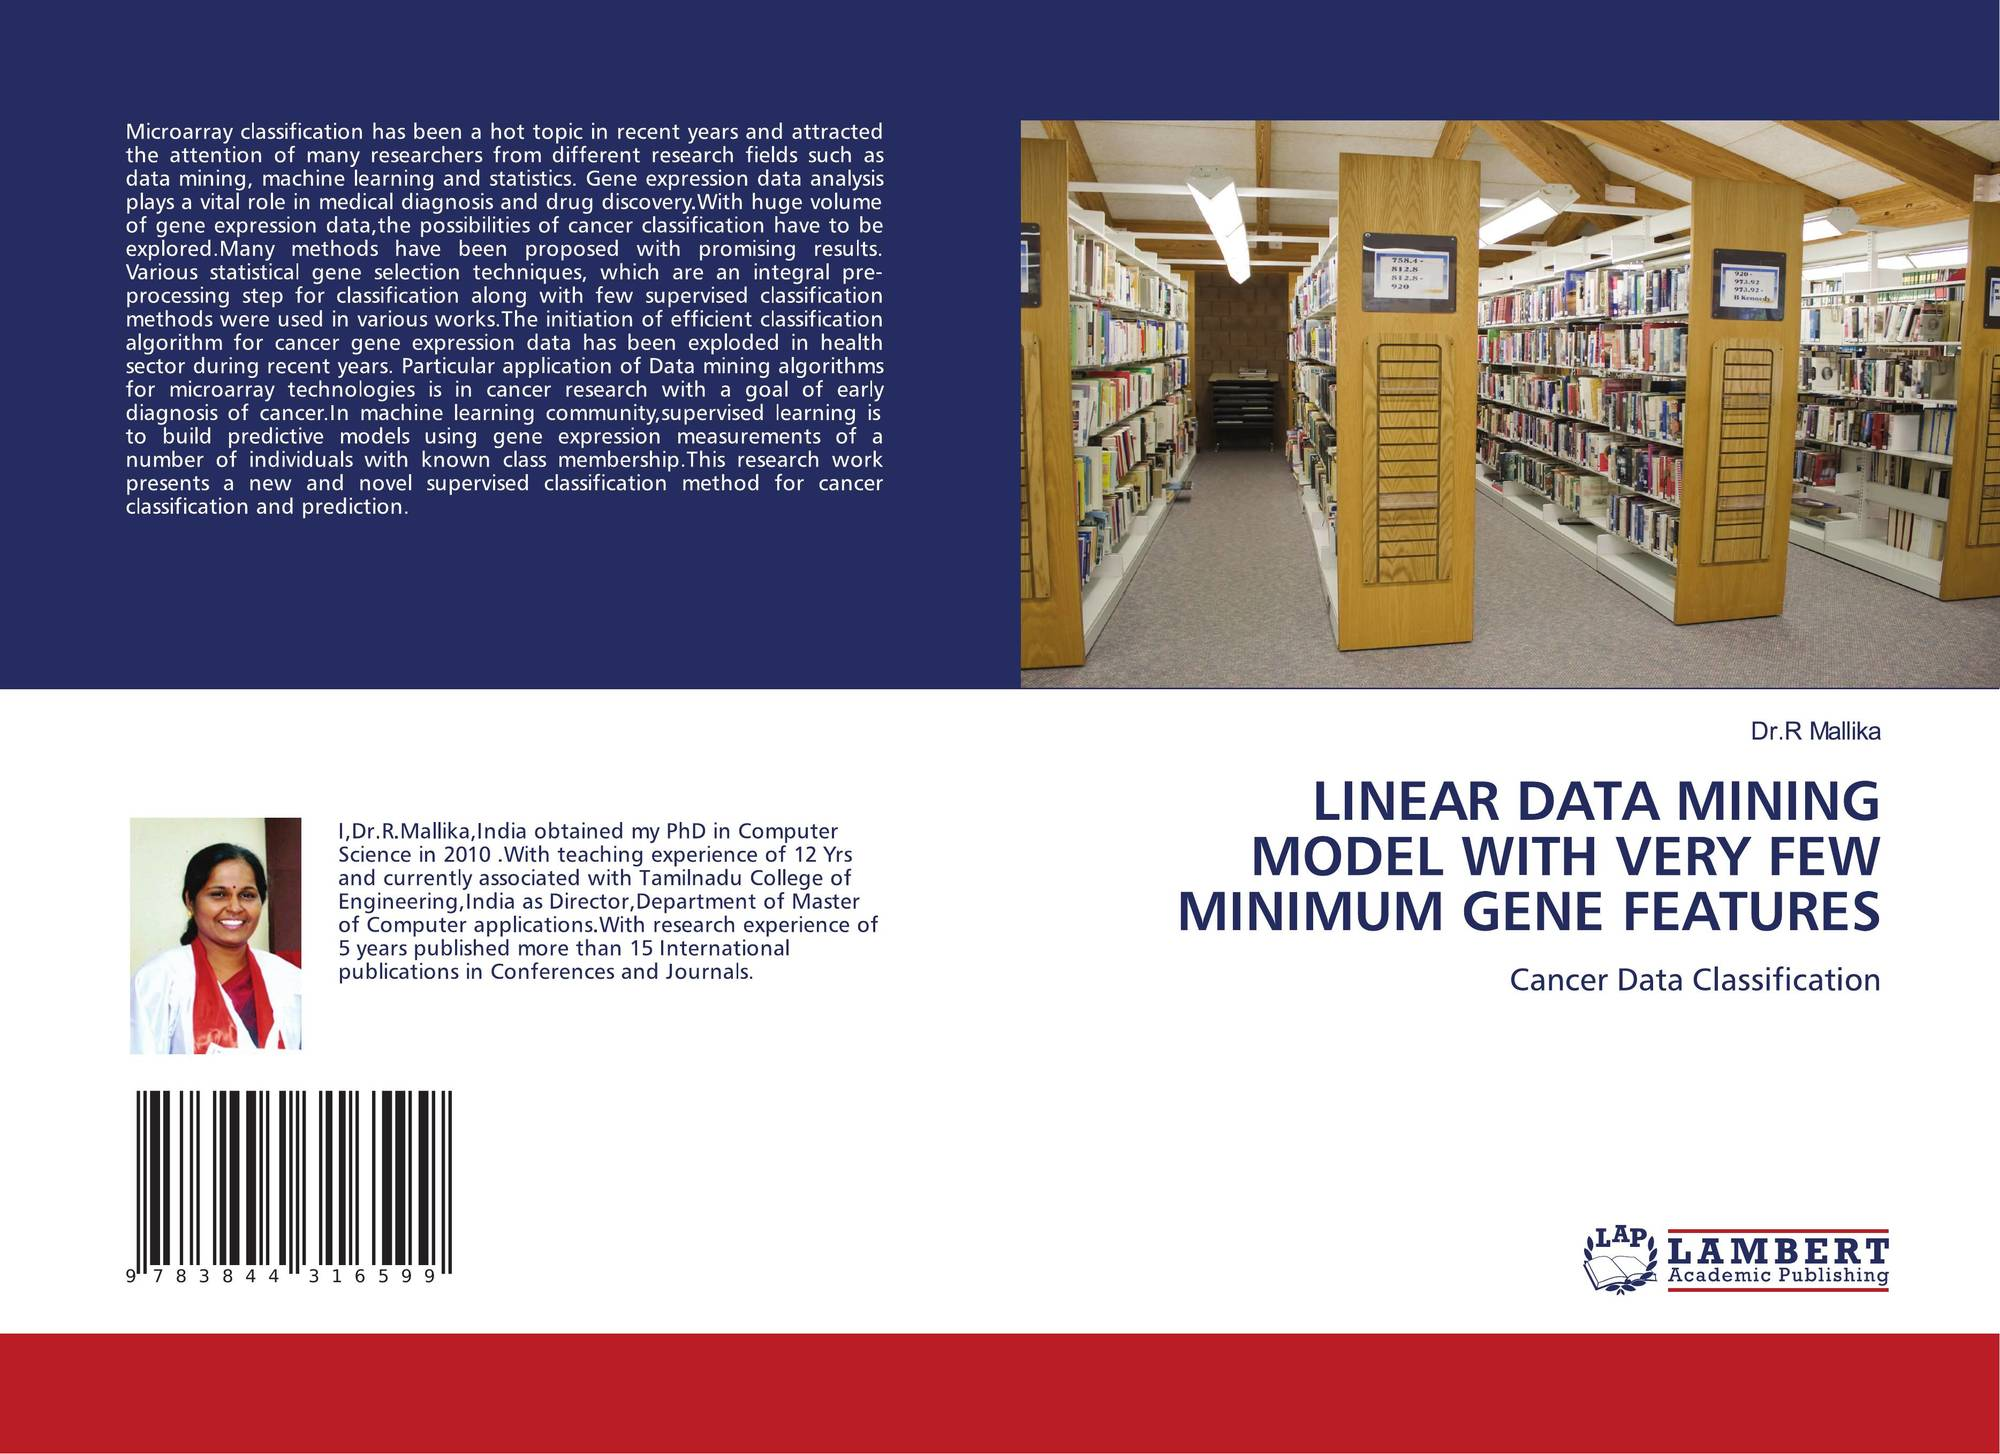 the features of data mining An introduction to the weka data mining system zdravko markov central connecticut state university markovz@ccsuedu ingrid russell university of hartford irussell@hartfordedu data mining the key features responsible for weka's success are.